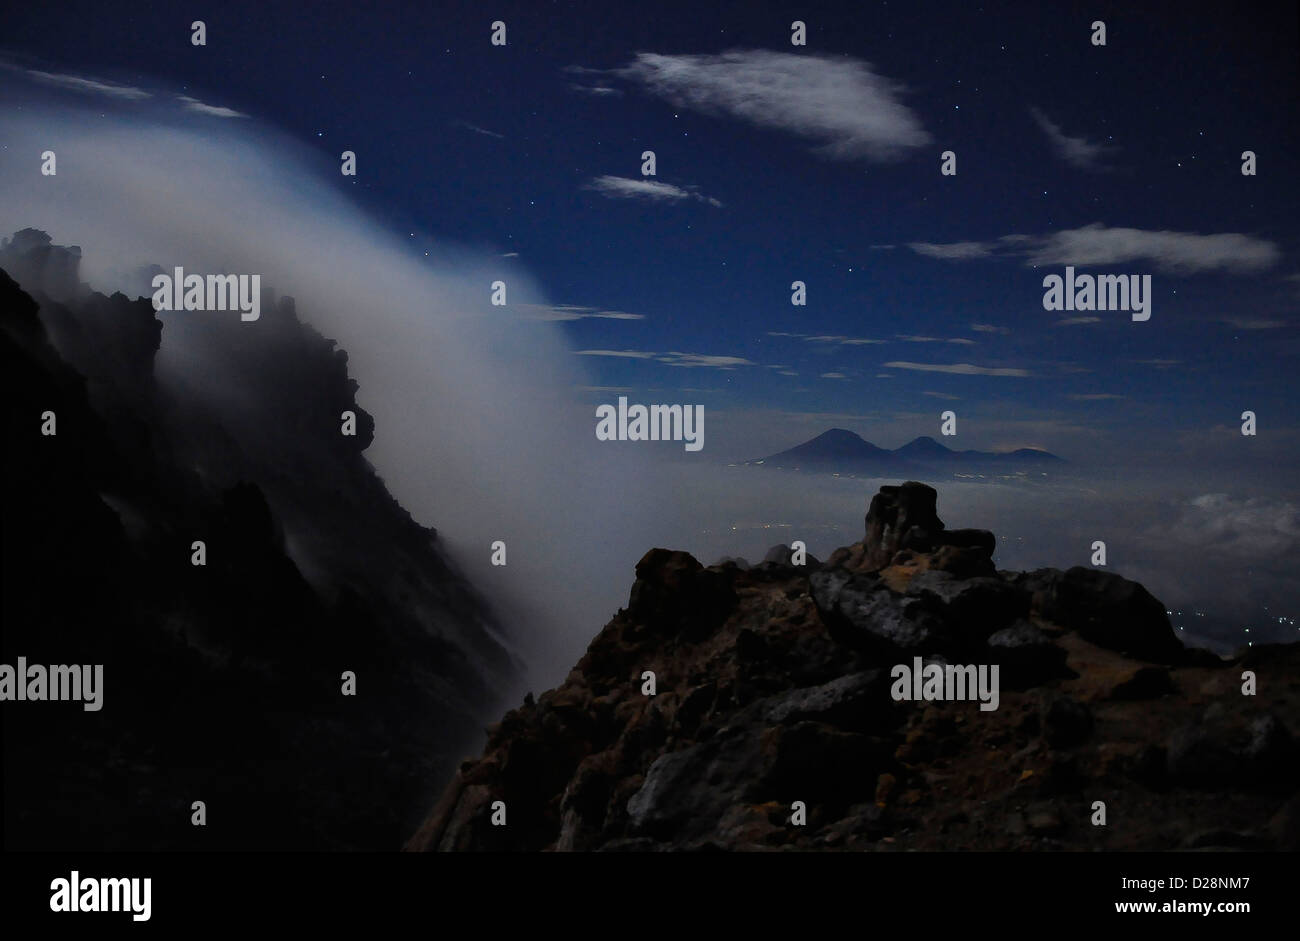 night view of the volcanic smoke on the summit of Mount Merapi to the Merbabu volcano, Central Java, Indonesia - Stock Image